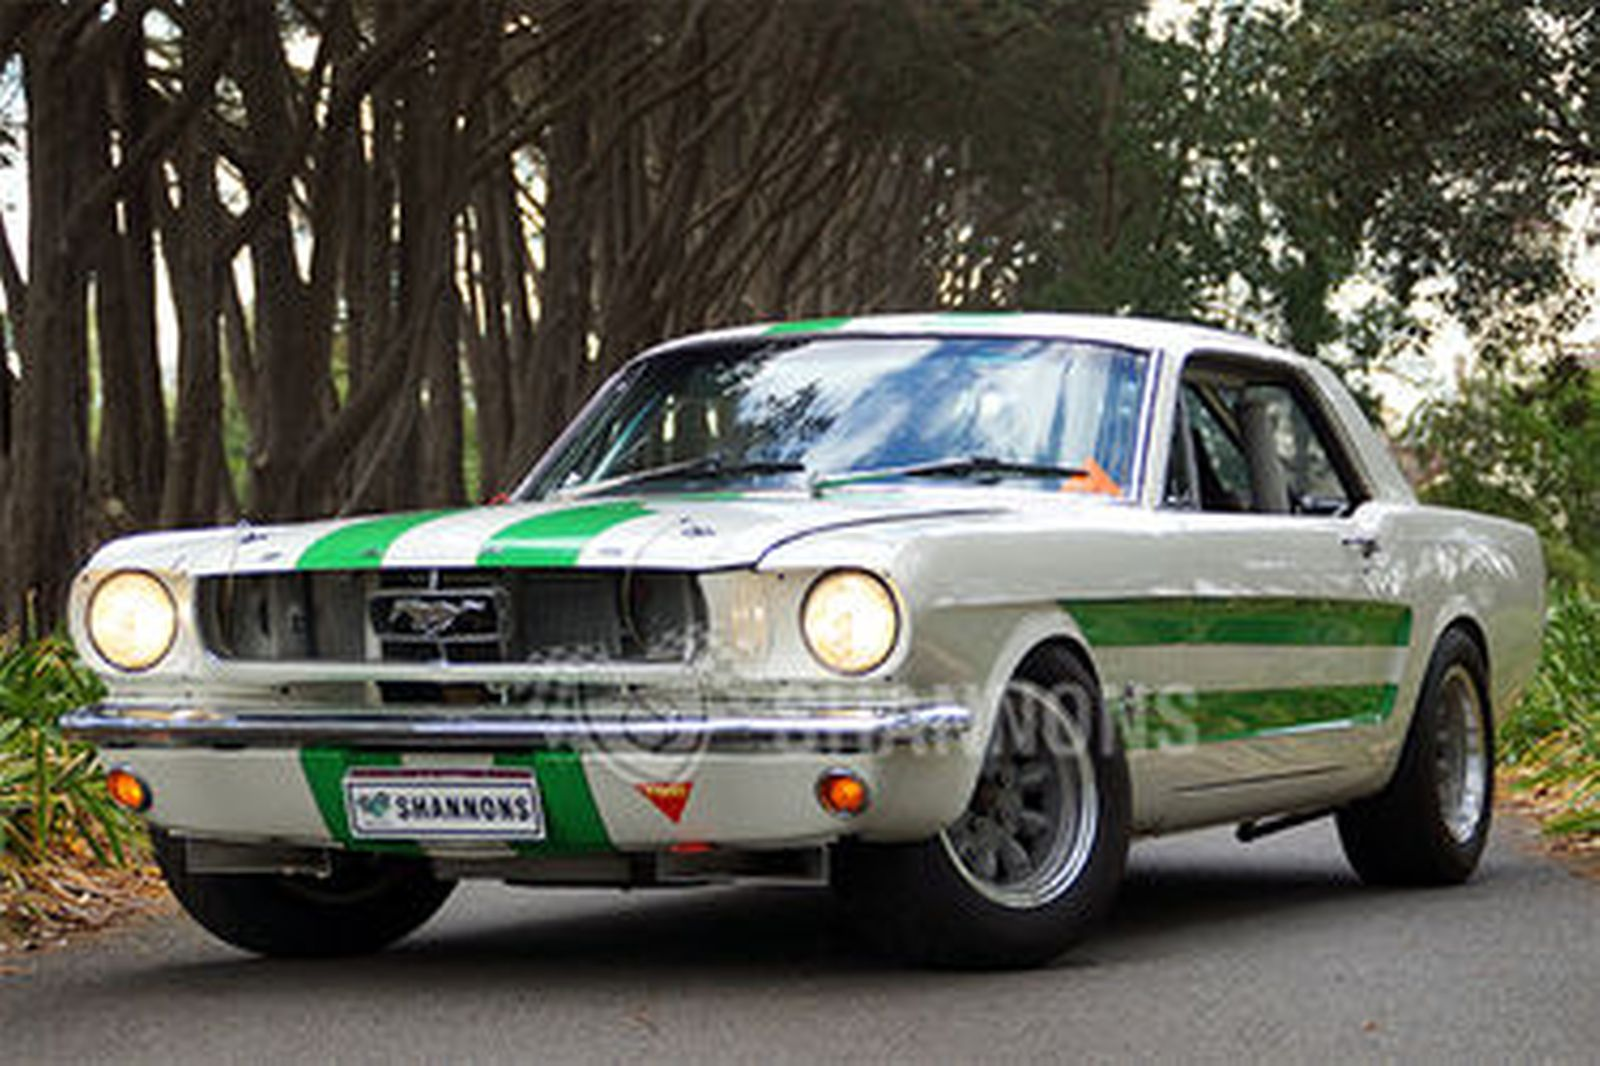 Ford Mustang Group Nctarmac Rally Prepared Coupe Rhd